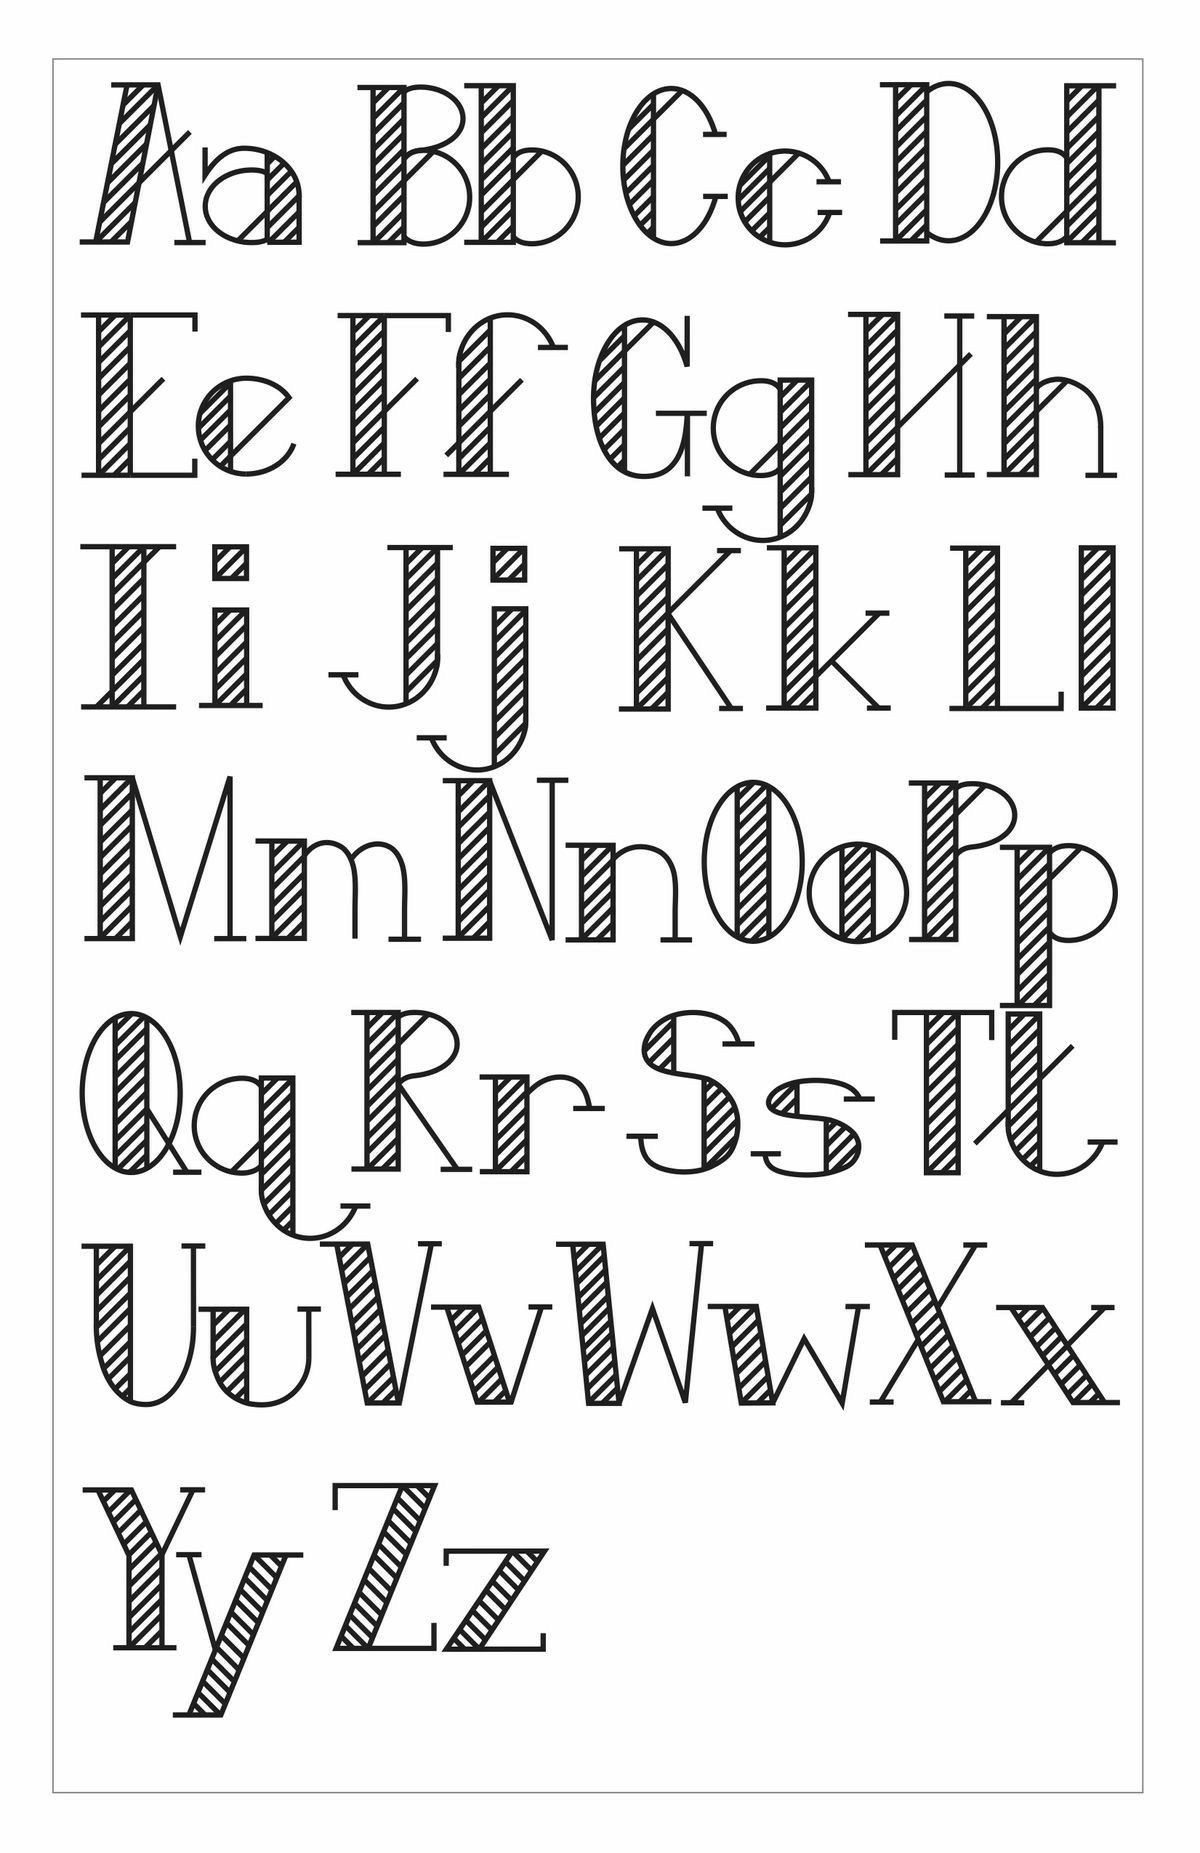 Pin by Rita Phelps on fonts | Lettering alphabet ...  Creative Lettering Styles